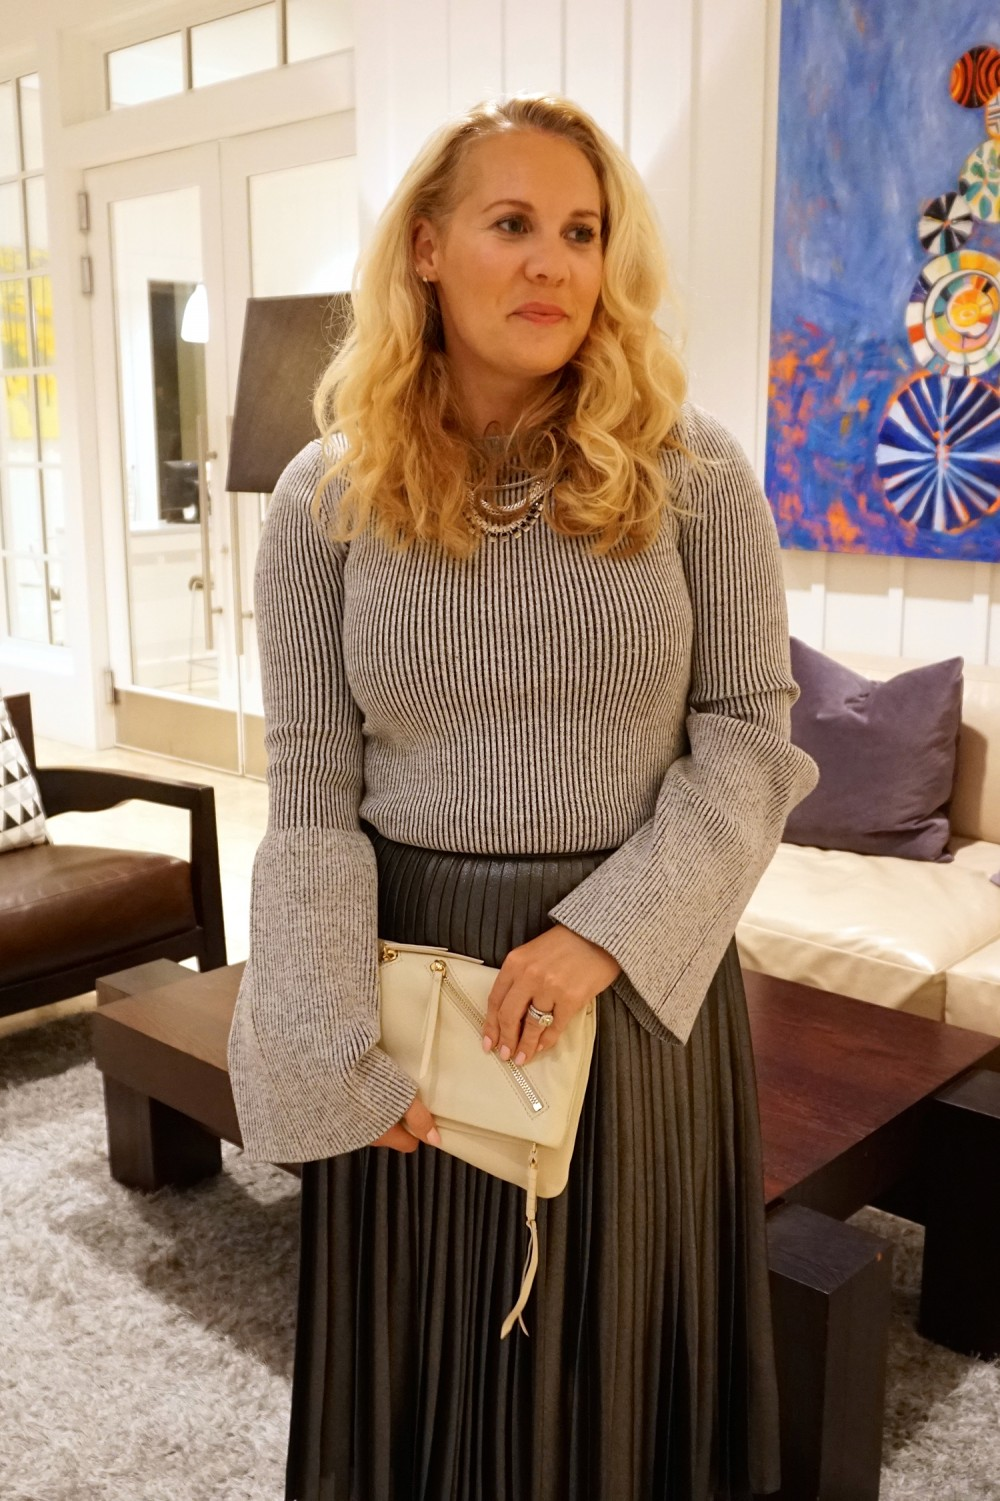 Trumpet Bell Sleeve Sweater-Ted Baker-Who What Wear for Target-Outfit Inspiration-Metallic Pleated Skirt-Steve Madden Suede Boots-Have Need Want 7